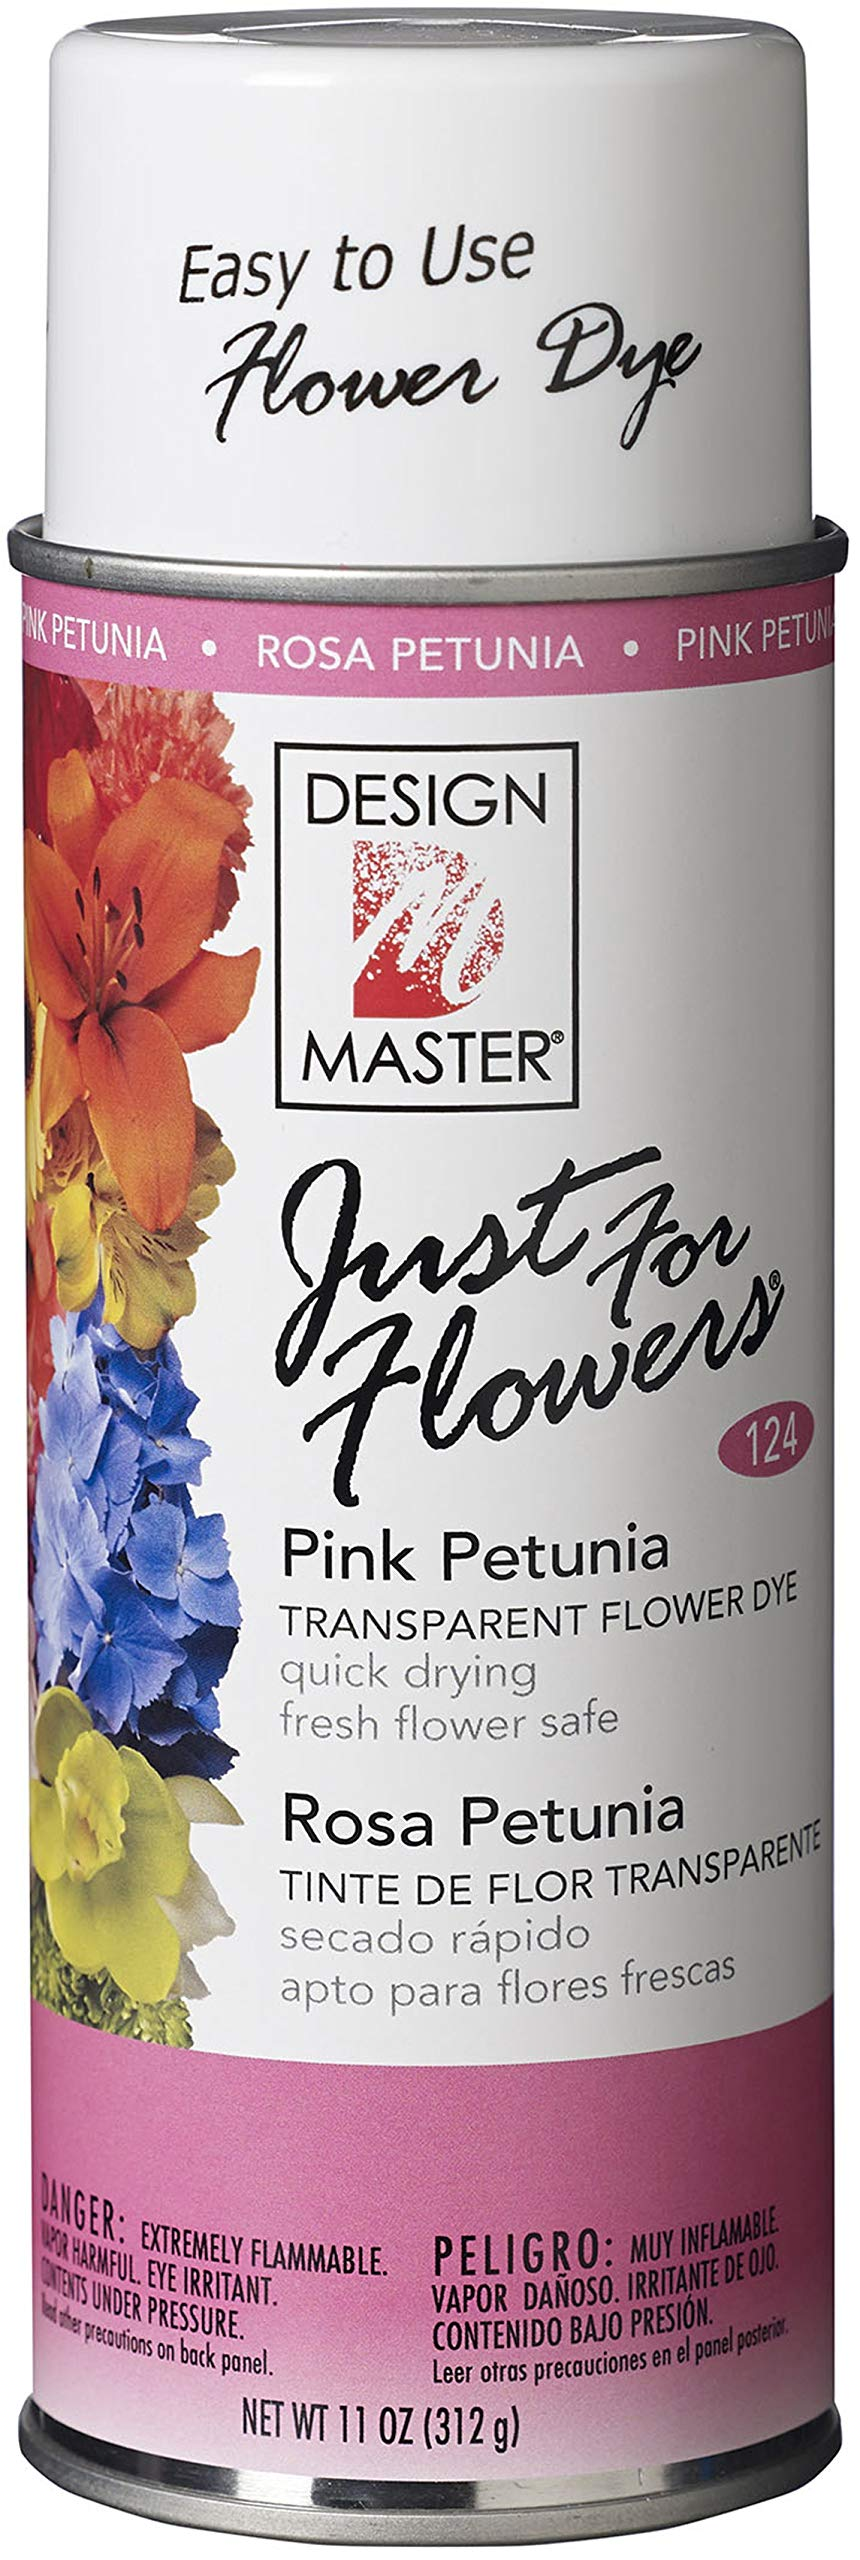 Design Master 124 Pink Petunia Just for Flowers